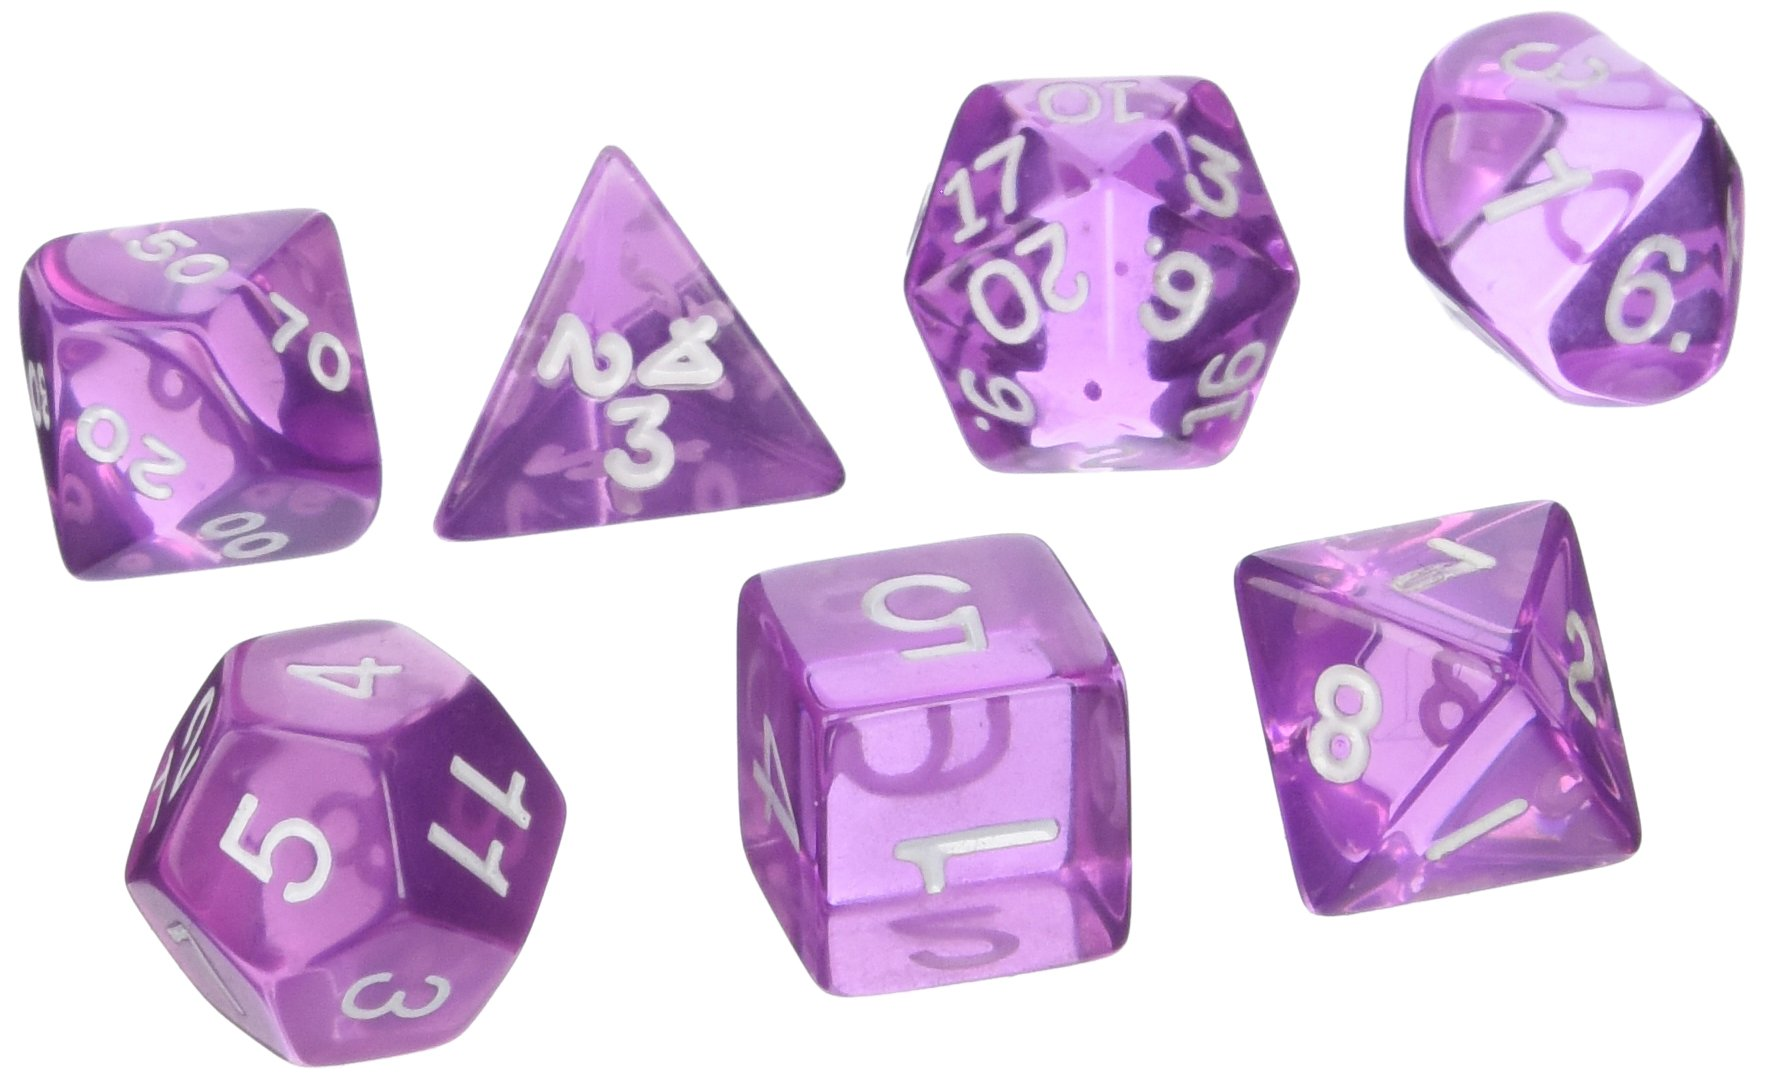 Koplow Games Polyhedral Dice Set (7-Piece), Transparent Orchid/White